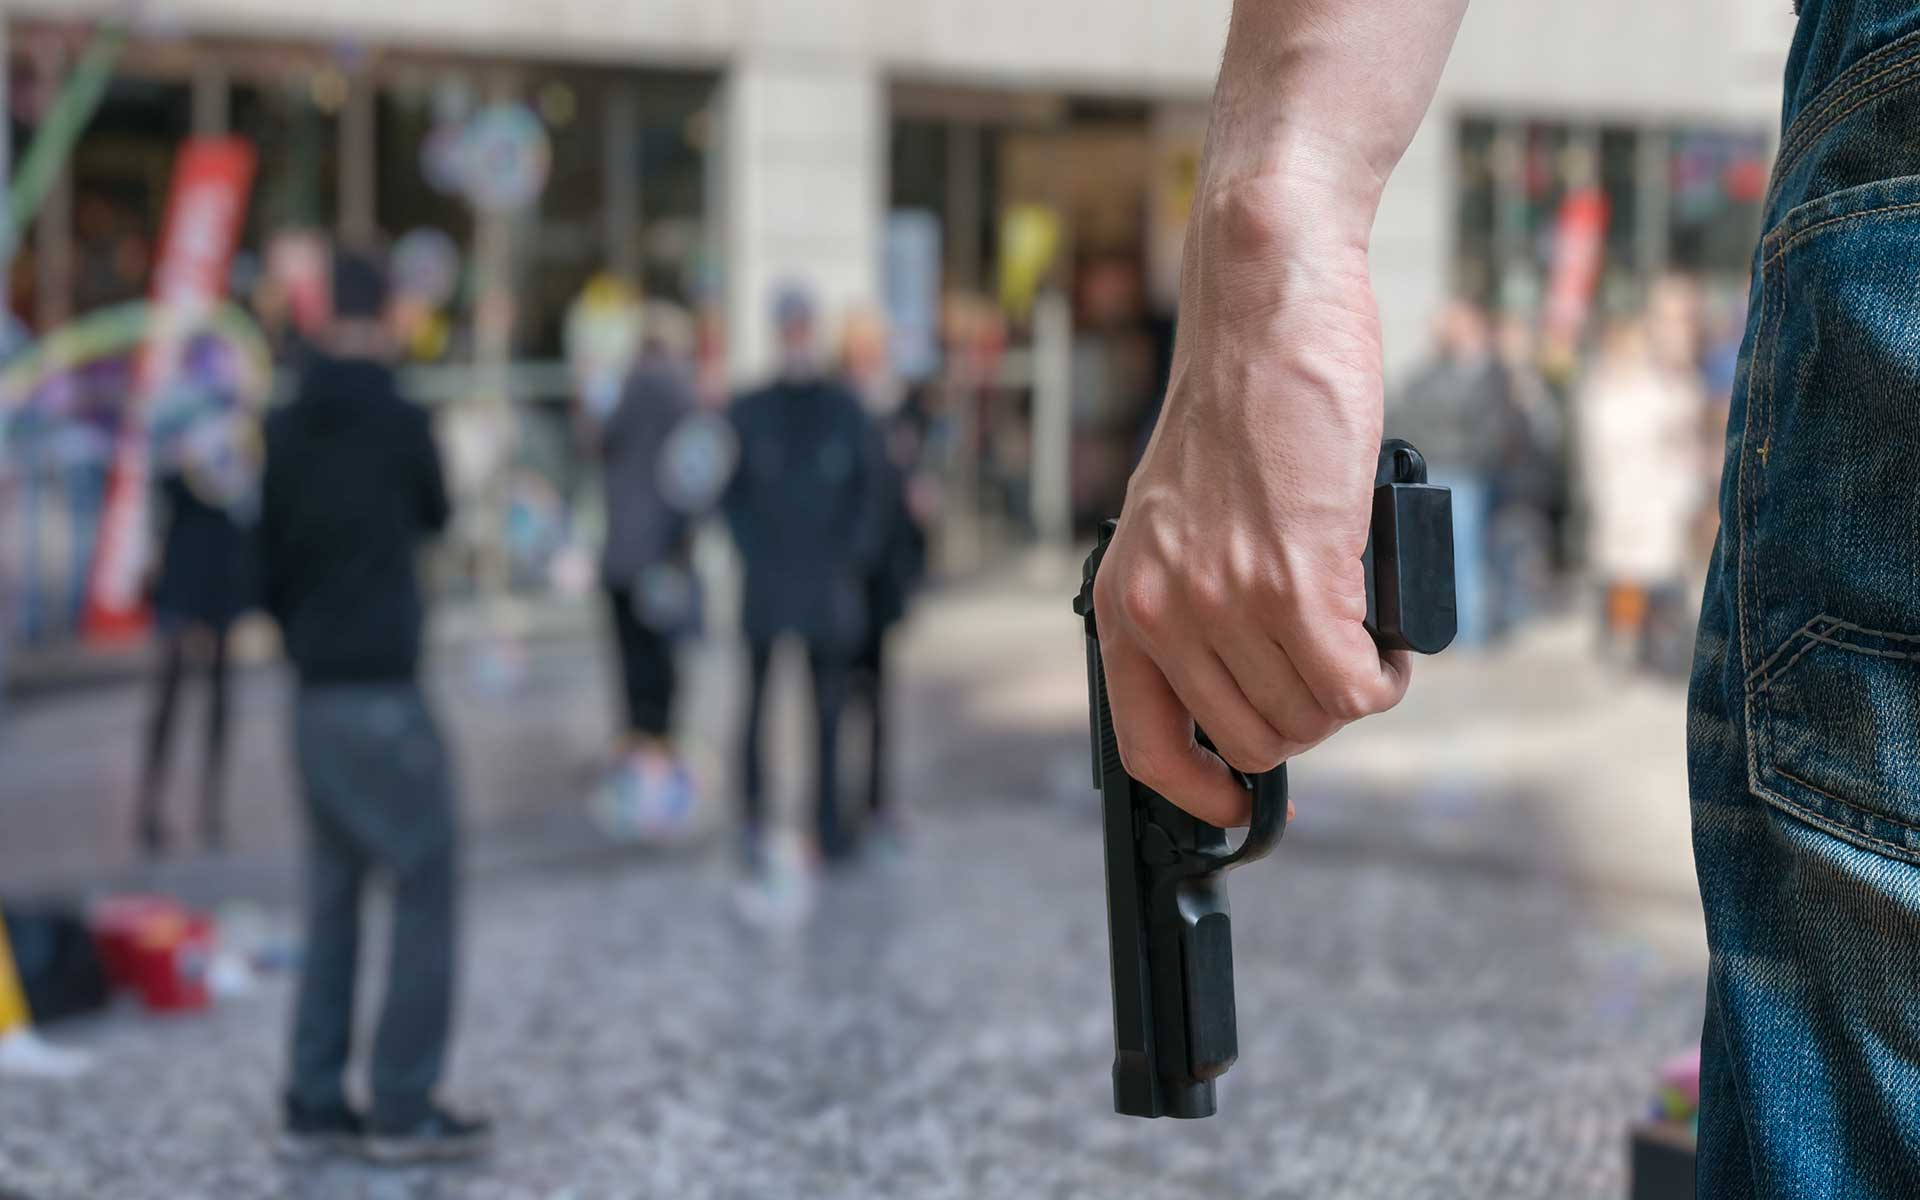 Man using a gun in a public place